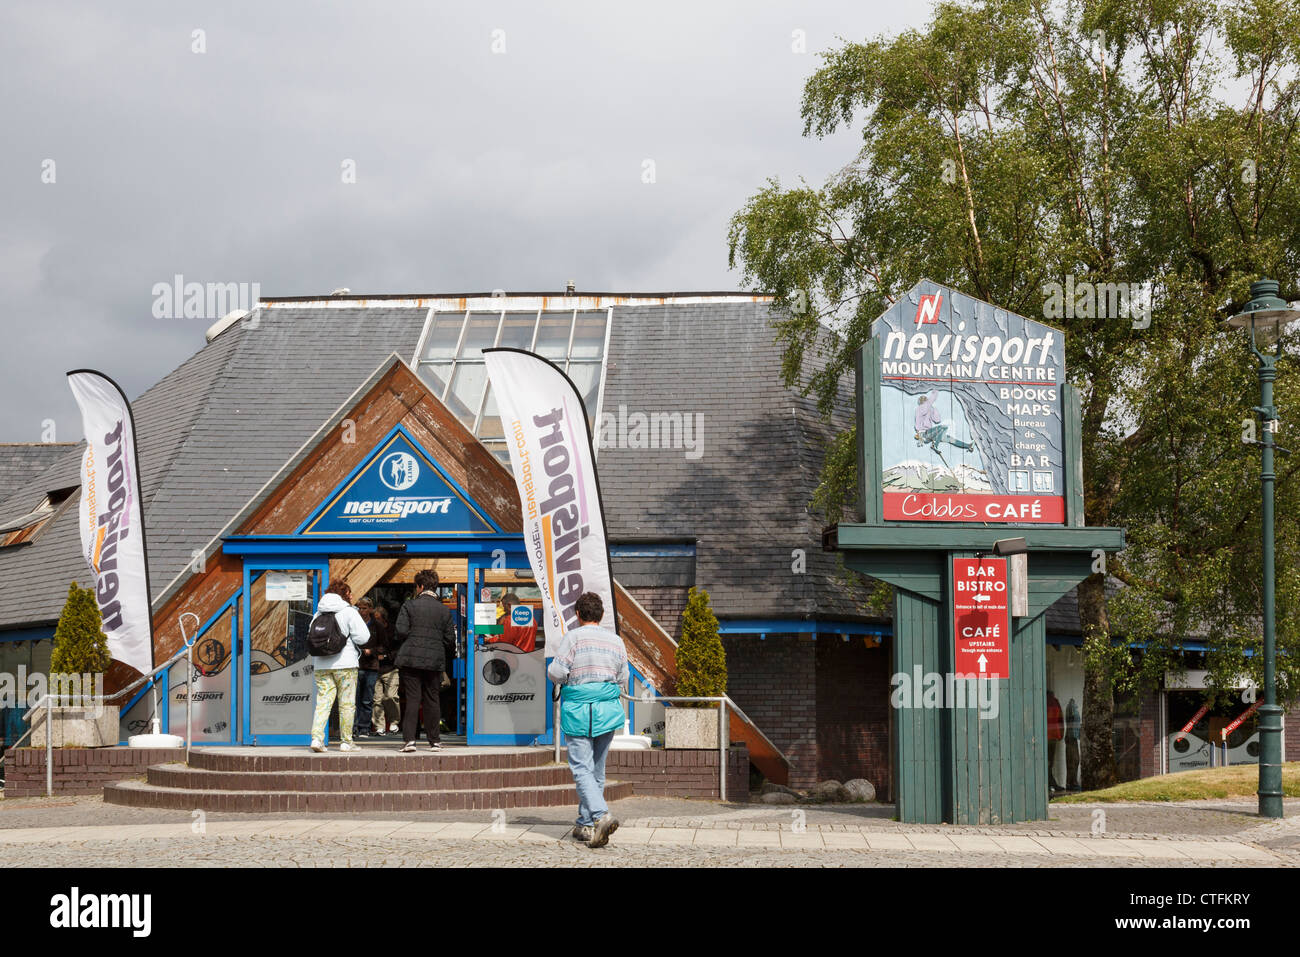 Nevisport Mountain Centre outdoor equipment shop and Cobbs cafe in Fort William, Inverness-shire, Highland, Scotland, Stock Photo